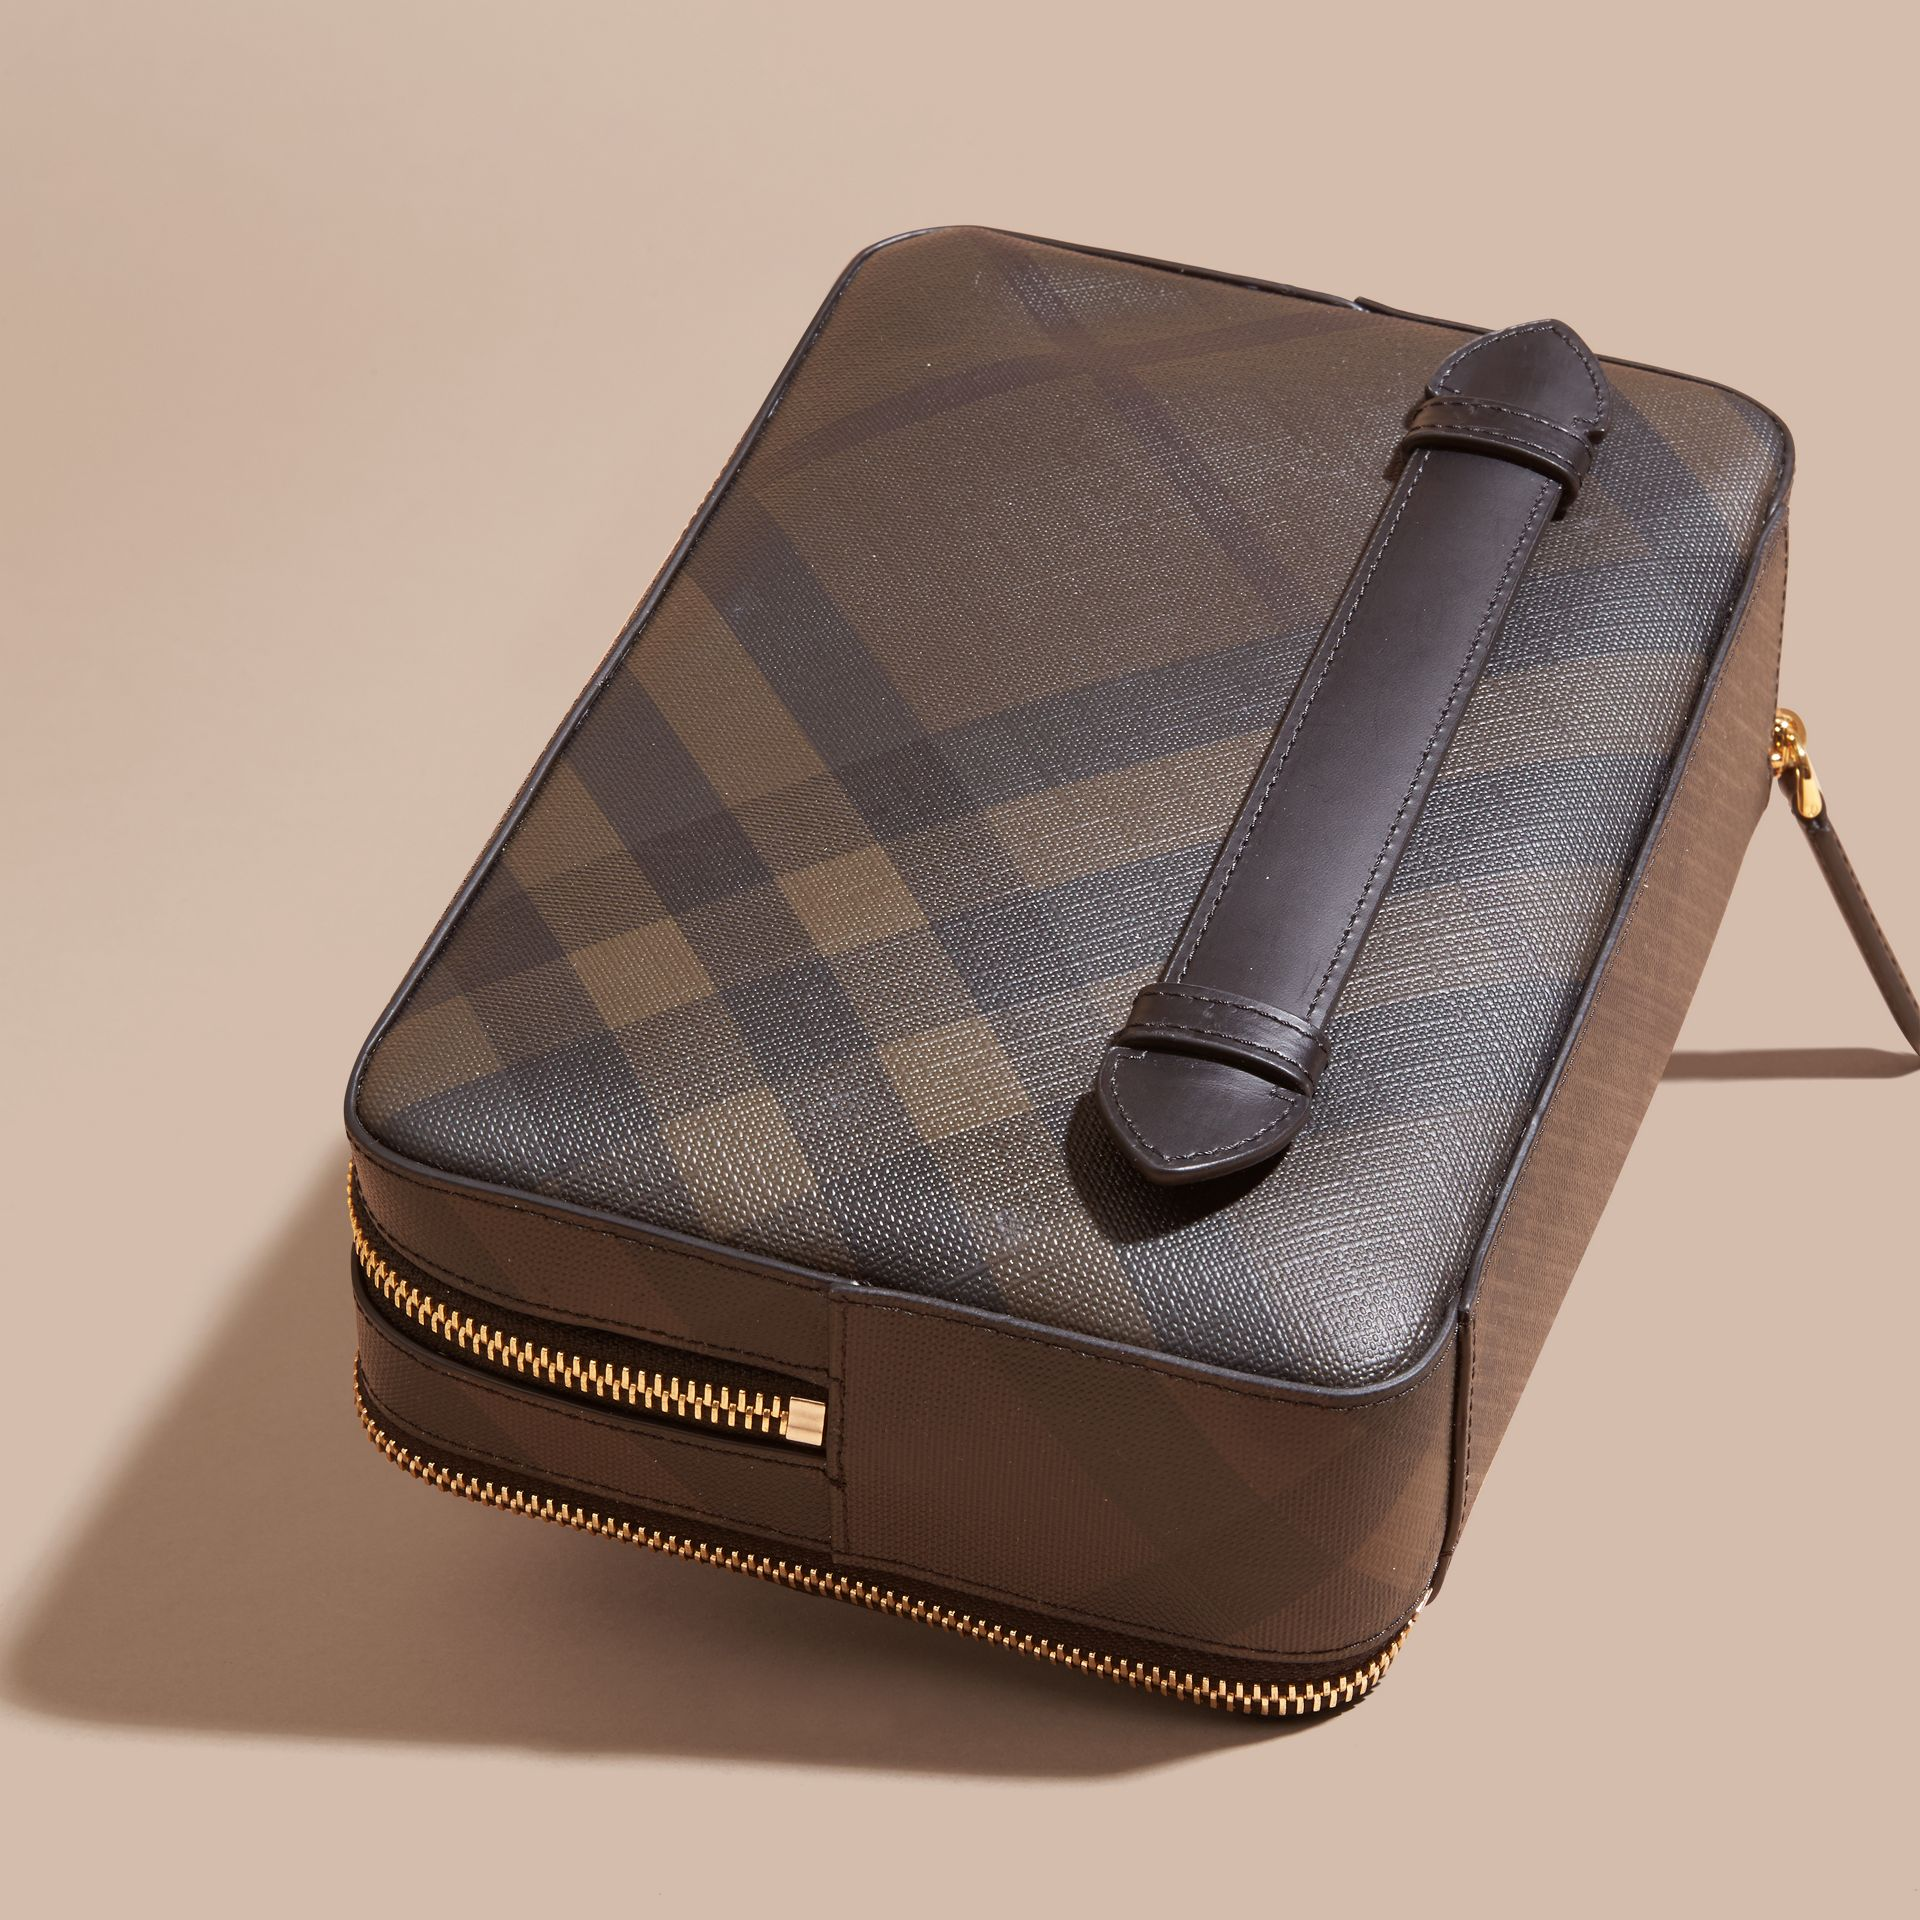 Leather-trimmed London Check Pouch in Chocolate/black - Men | Burberry United Kingdom - gallery image 3